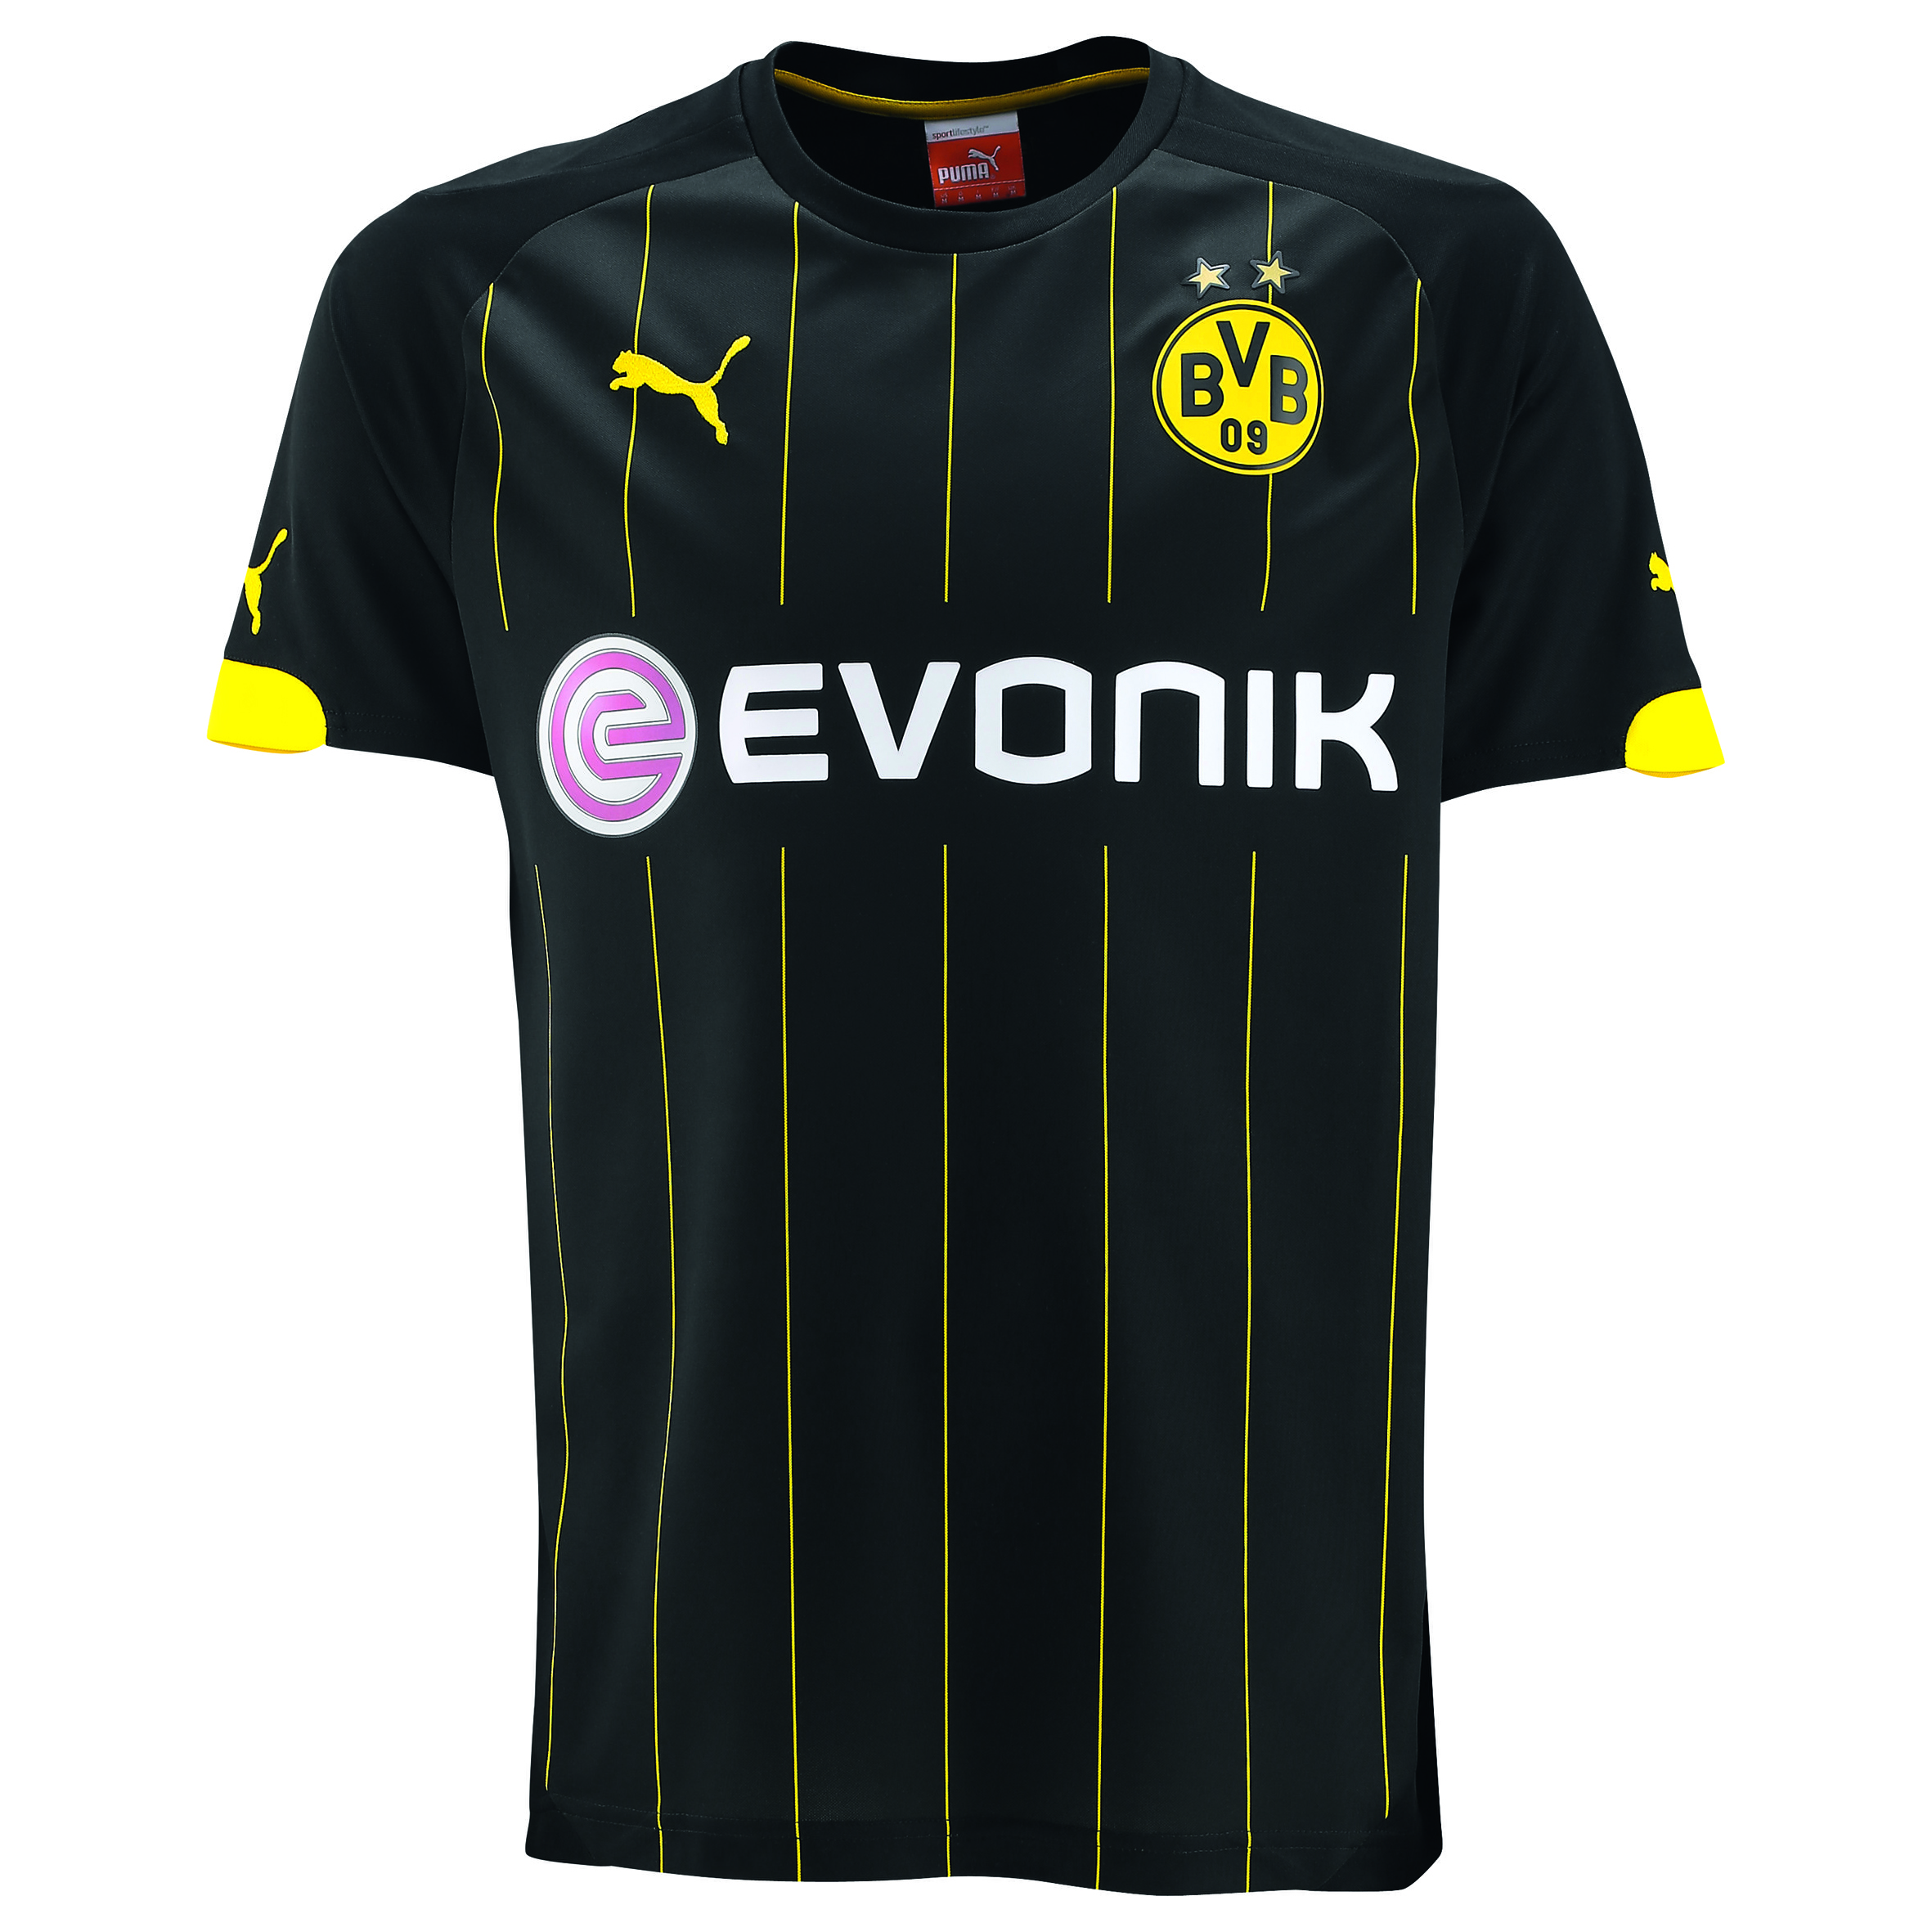 BVB Away Shirt 2014/15